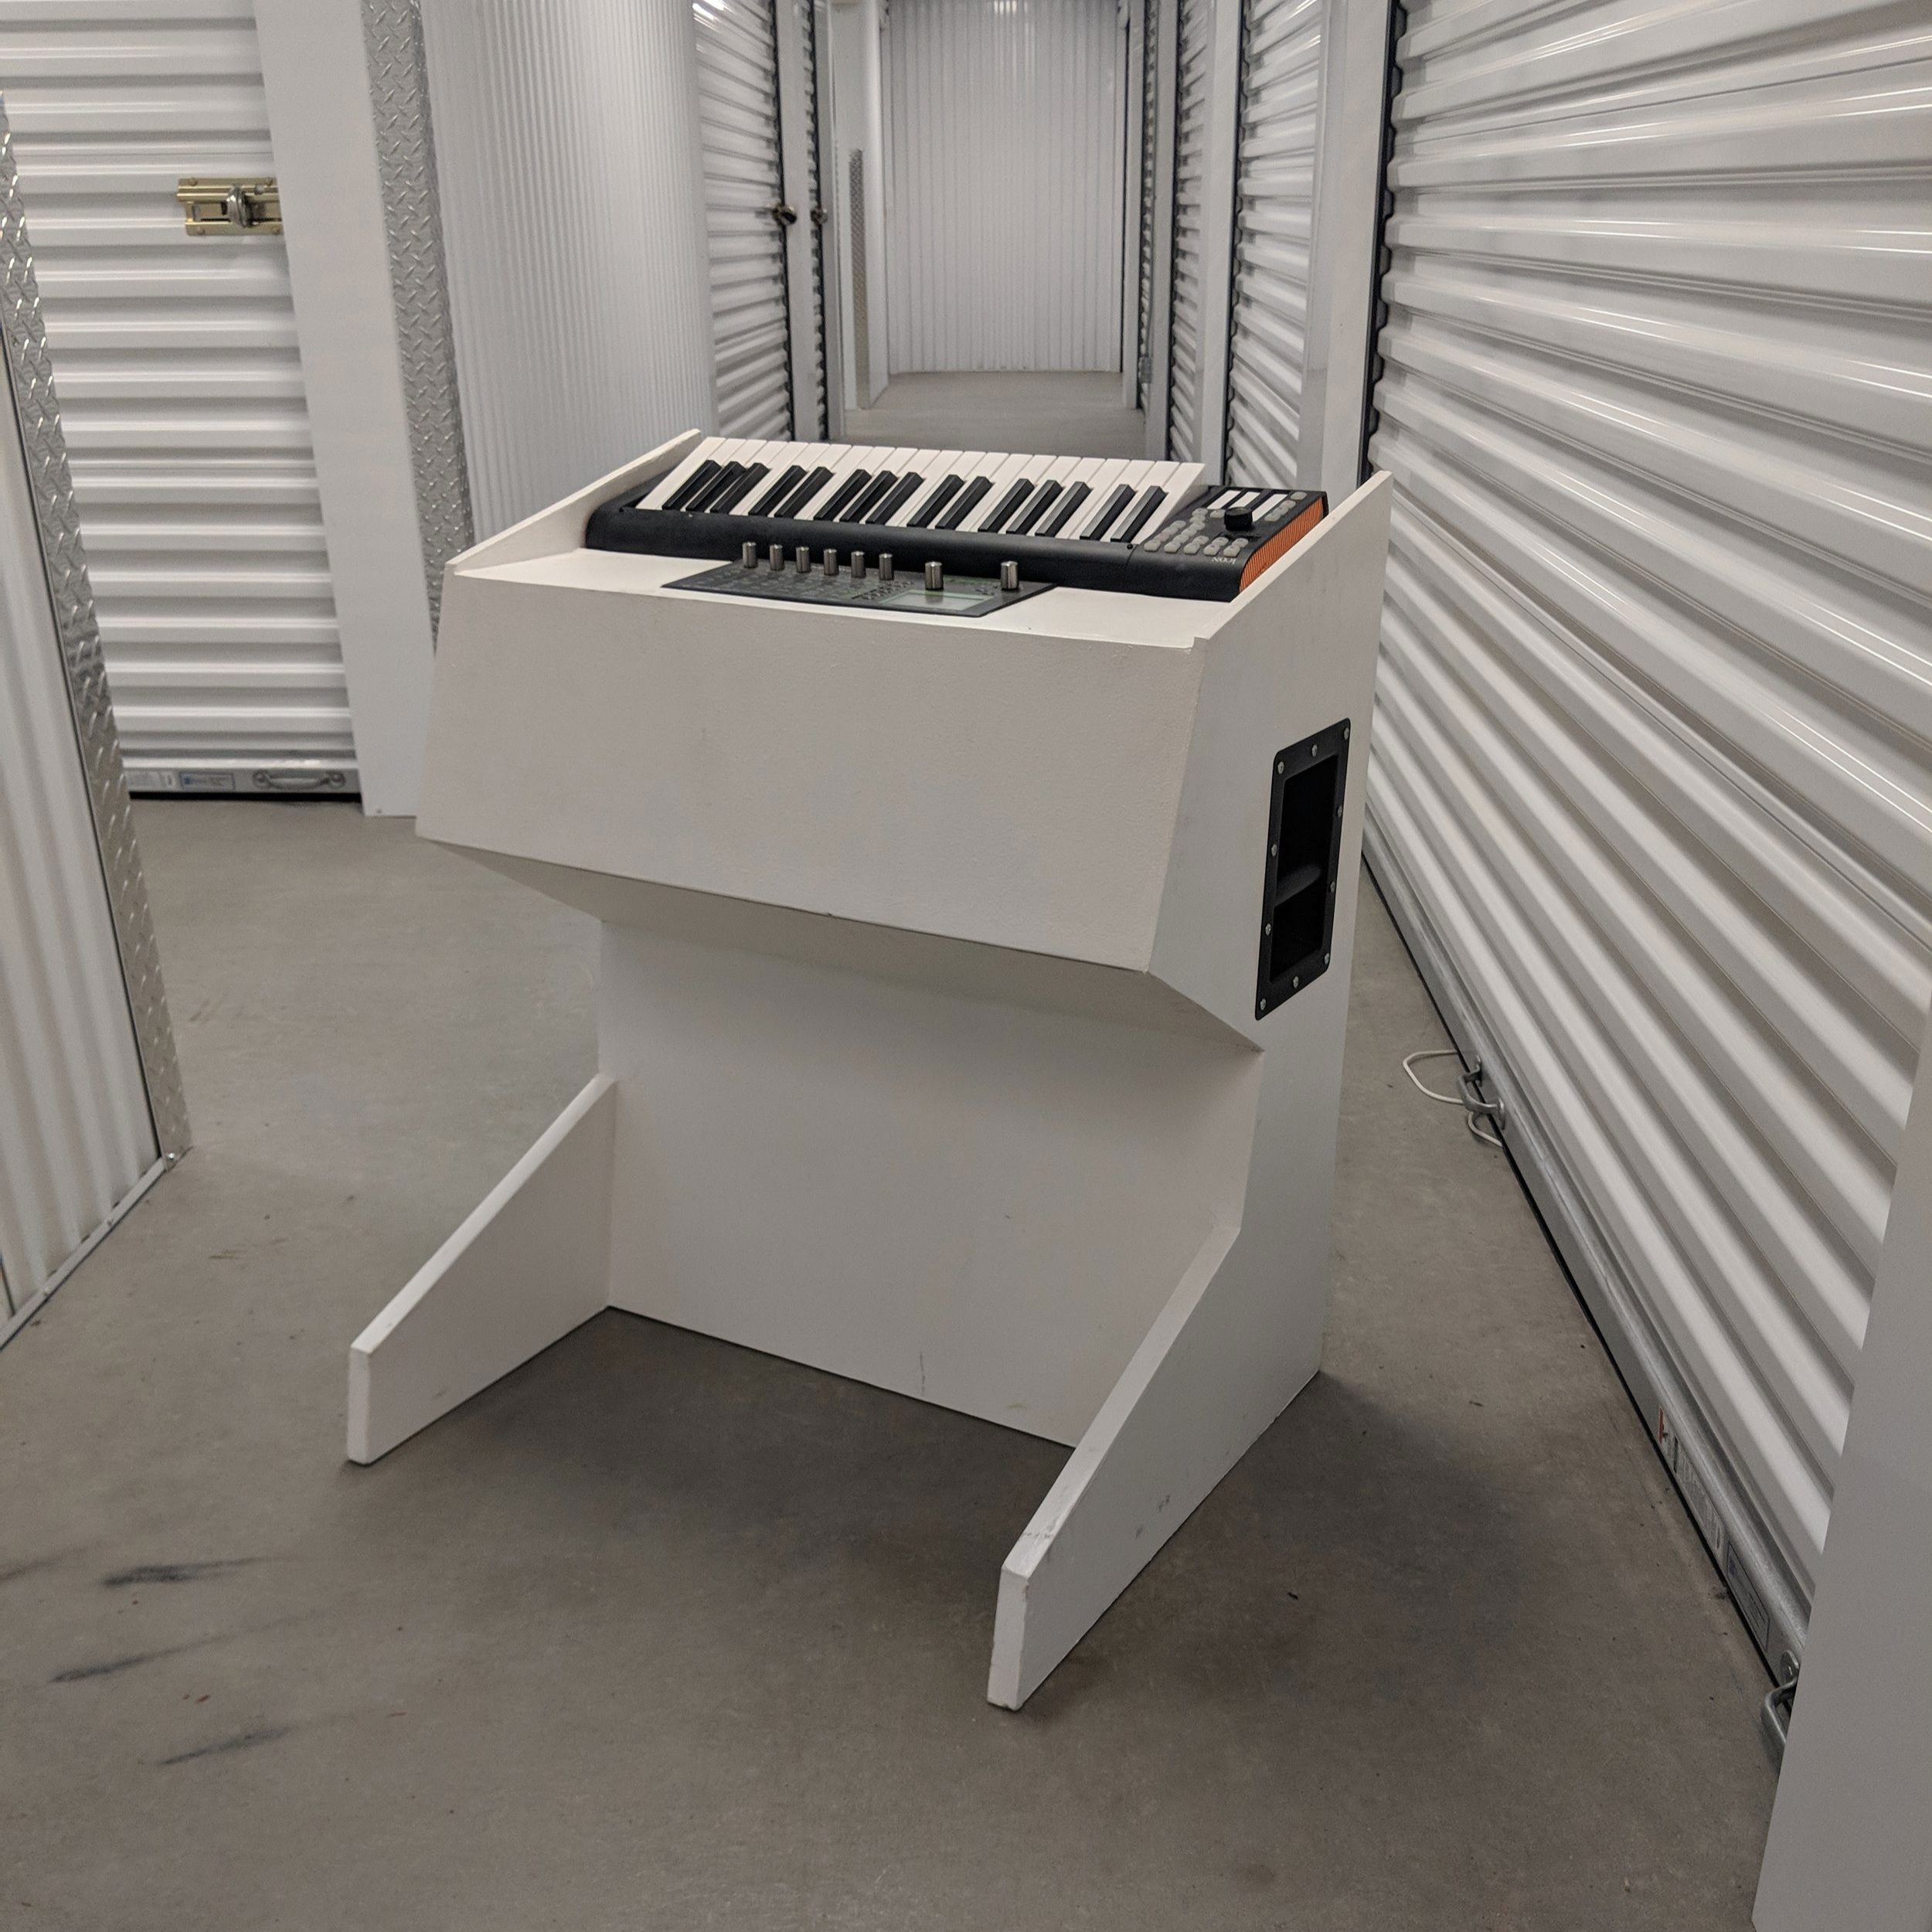 fabrication - synth station